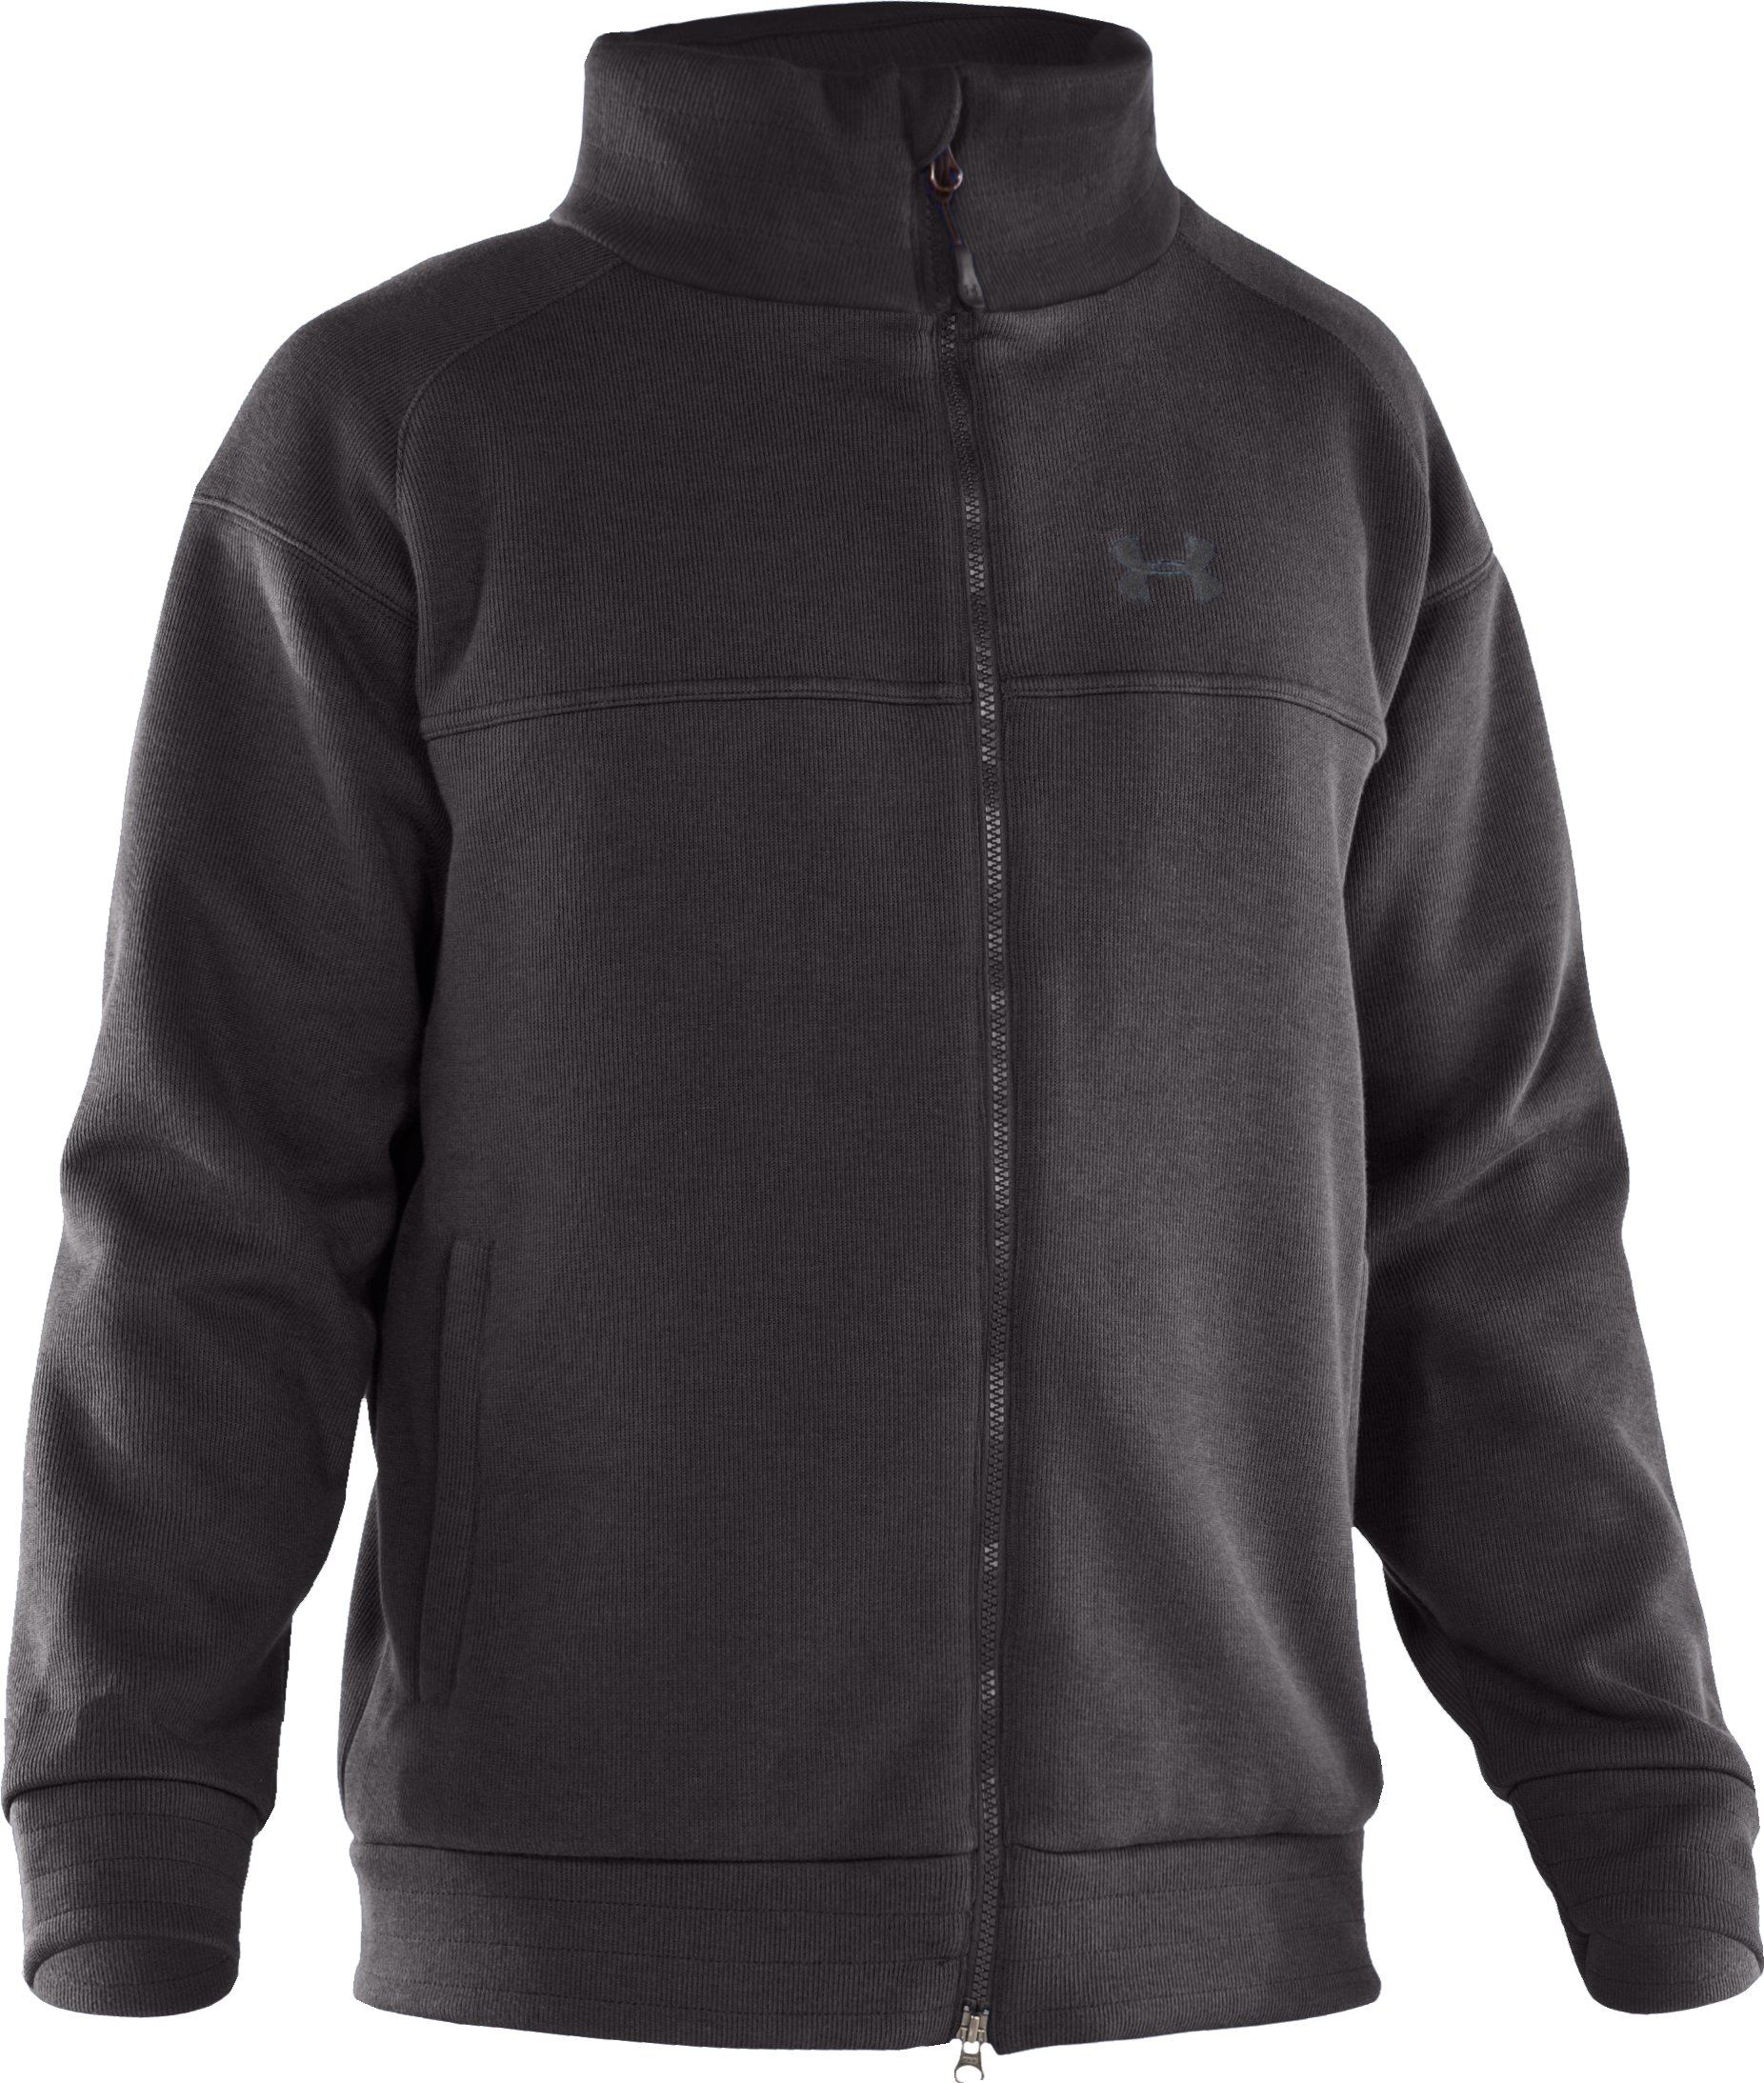 Men's UA Swagger Storm Wind Jacket, Charcoal